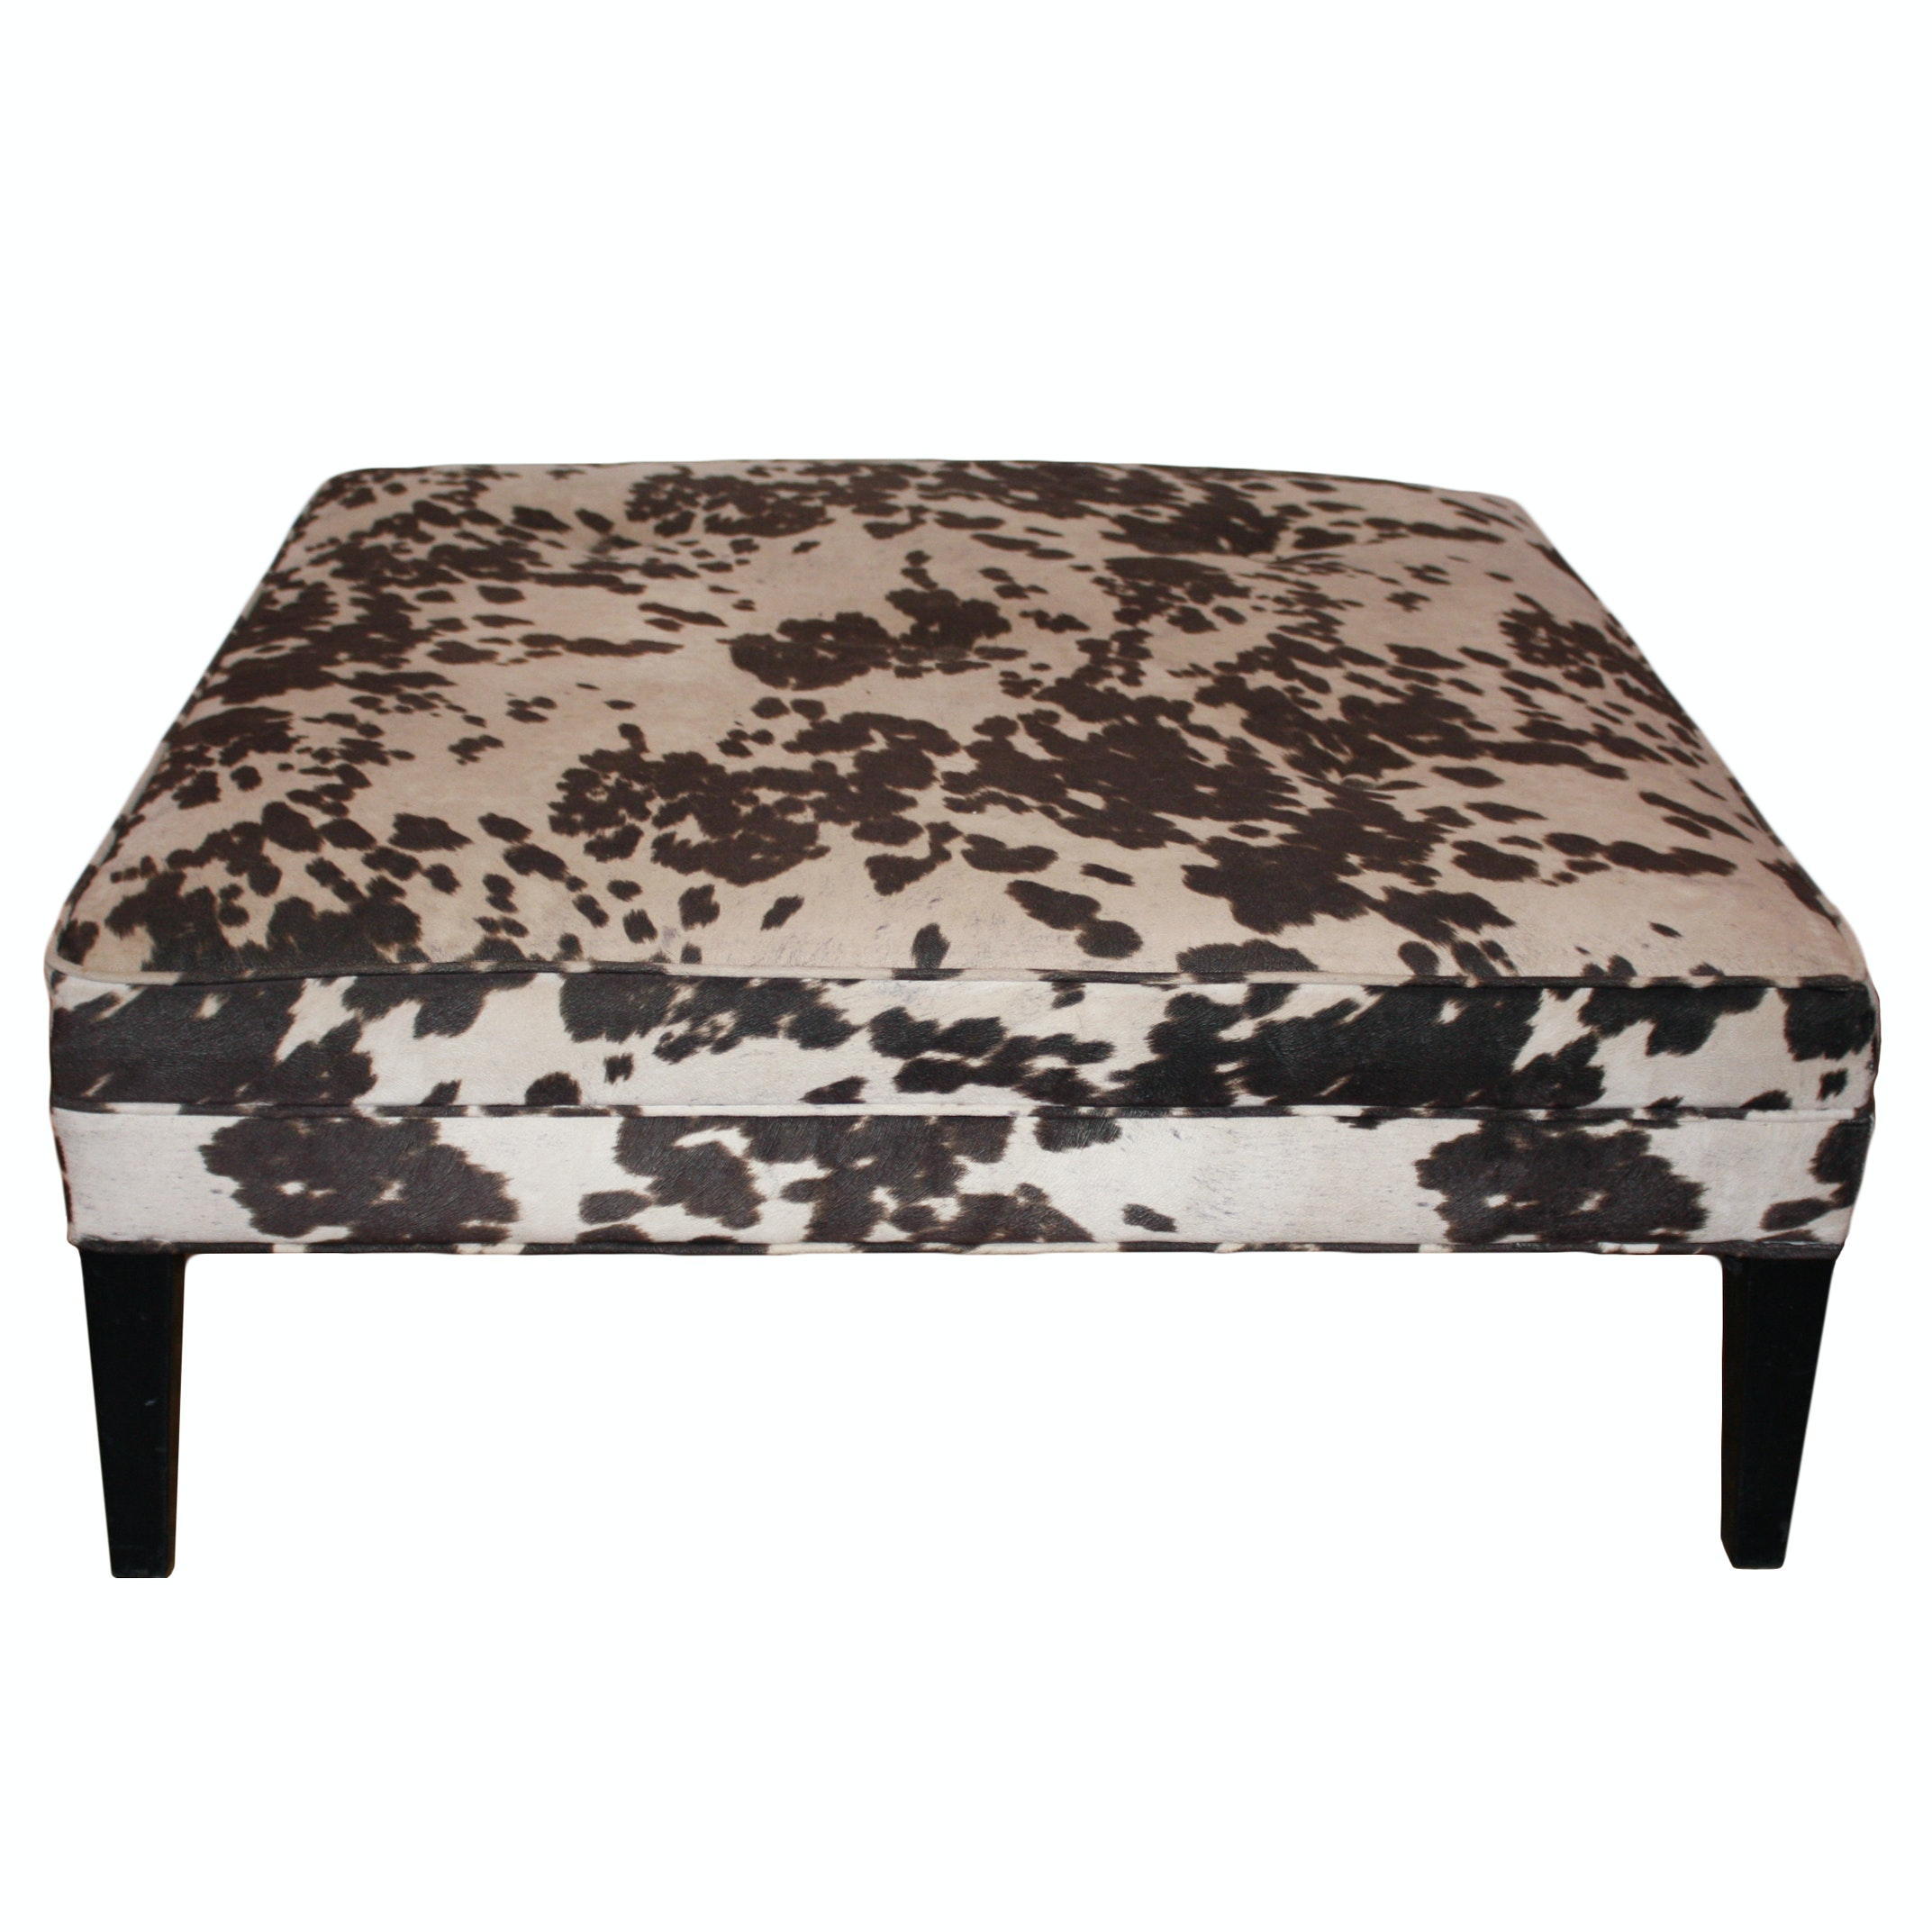 Cowhide Print Upholstered Ottoman